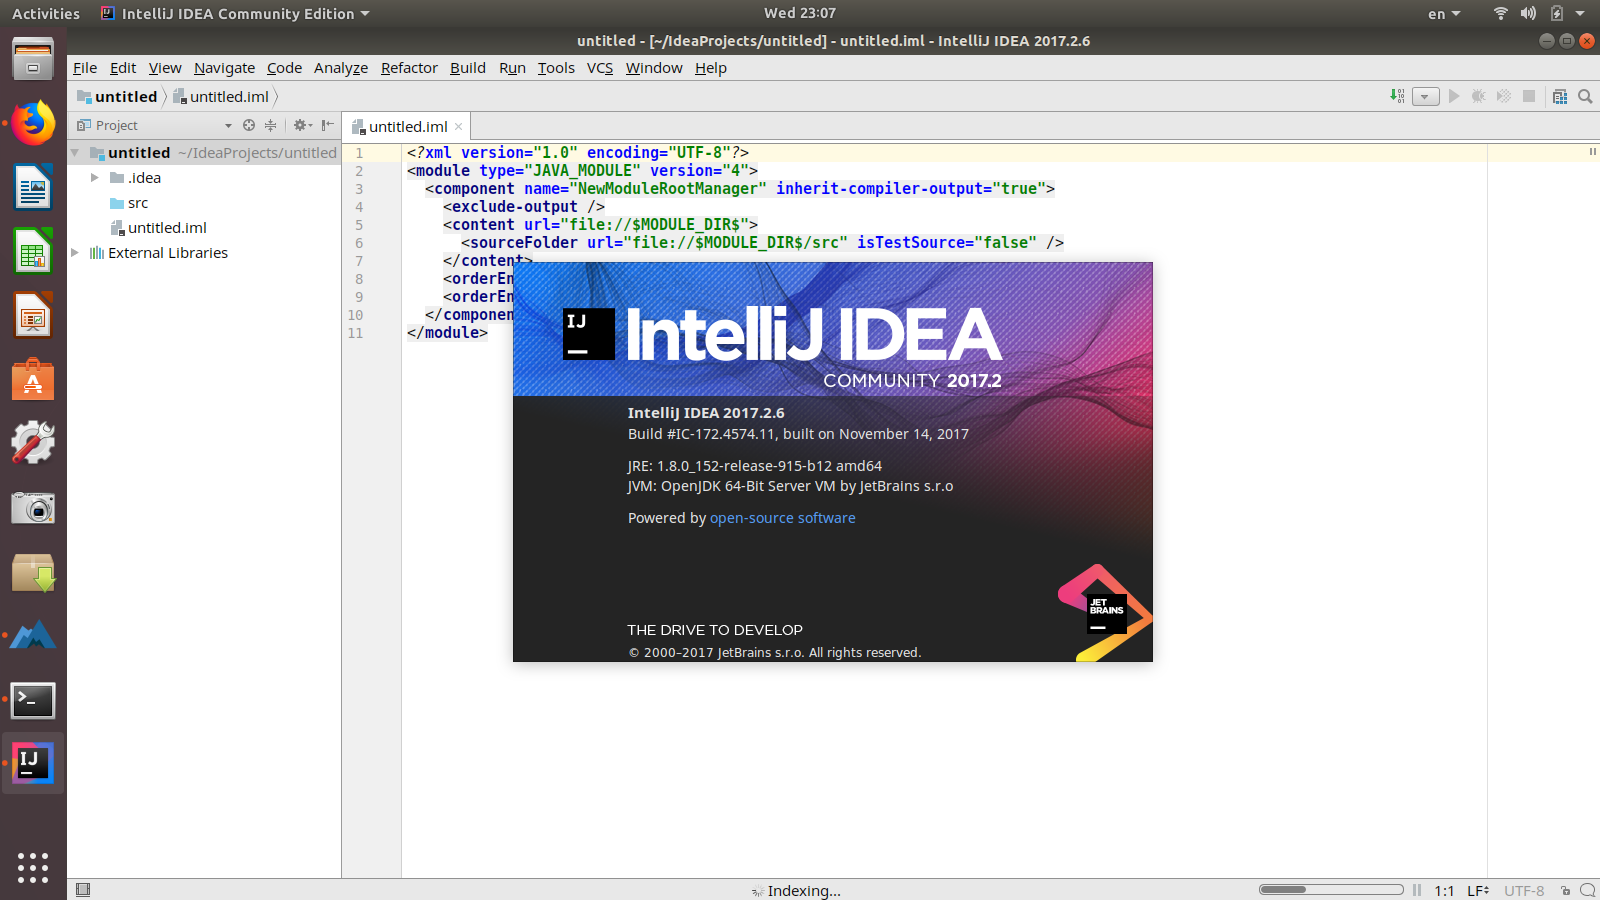 How to install program on Ubuntu: How to install IntelliJ